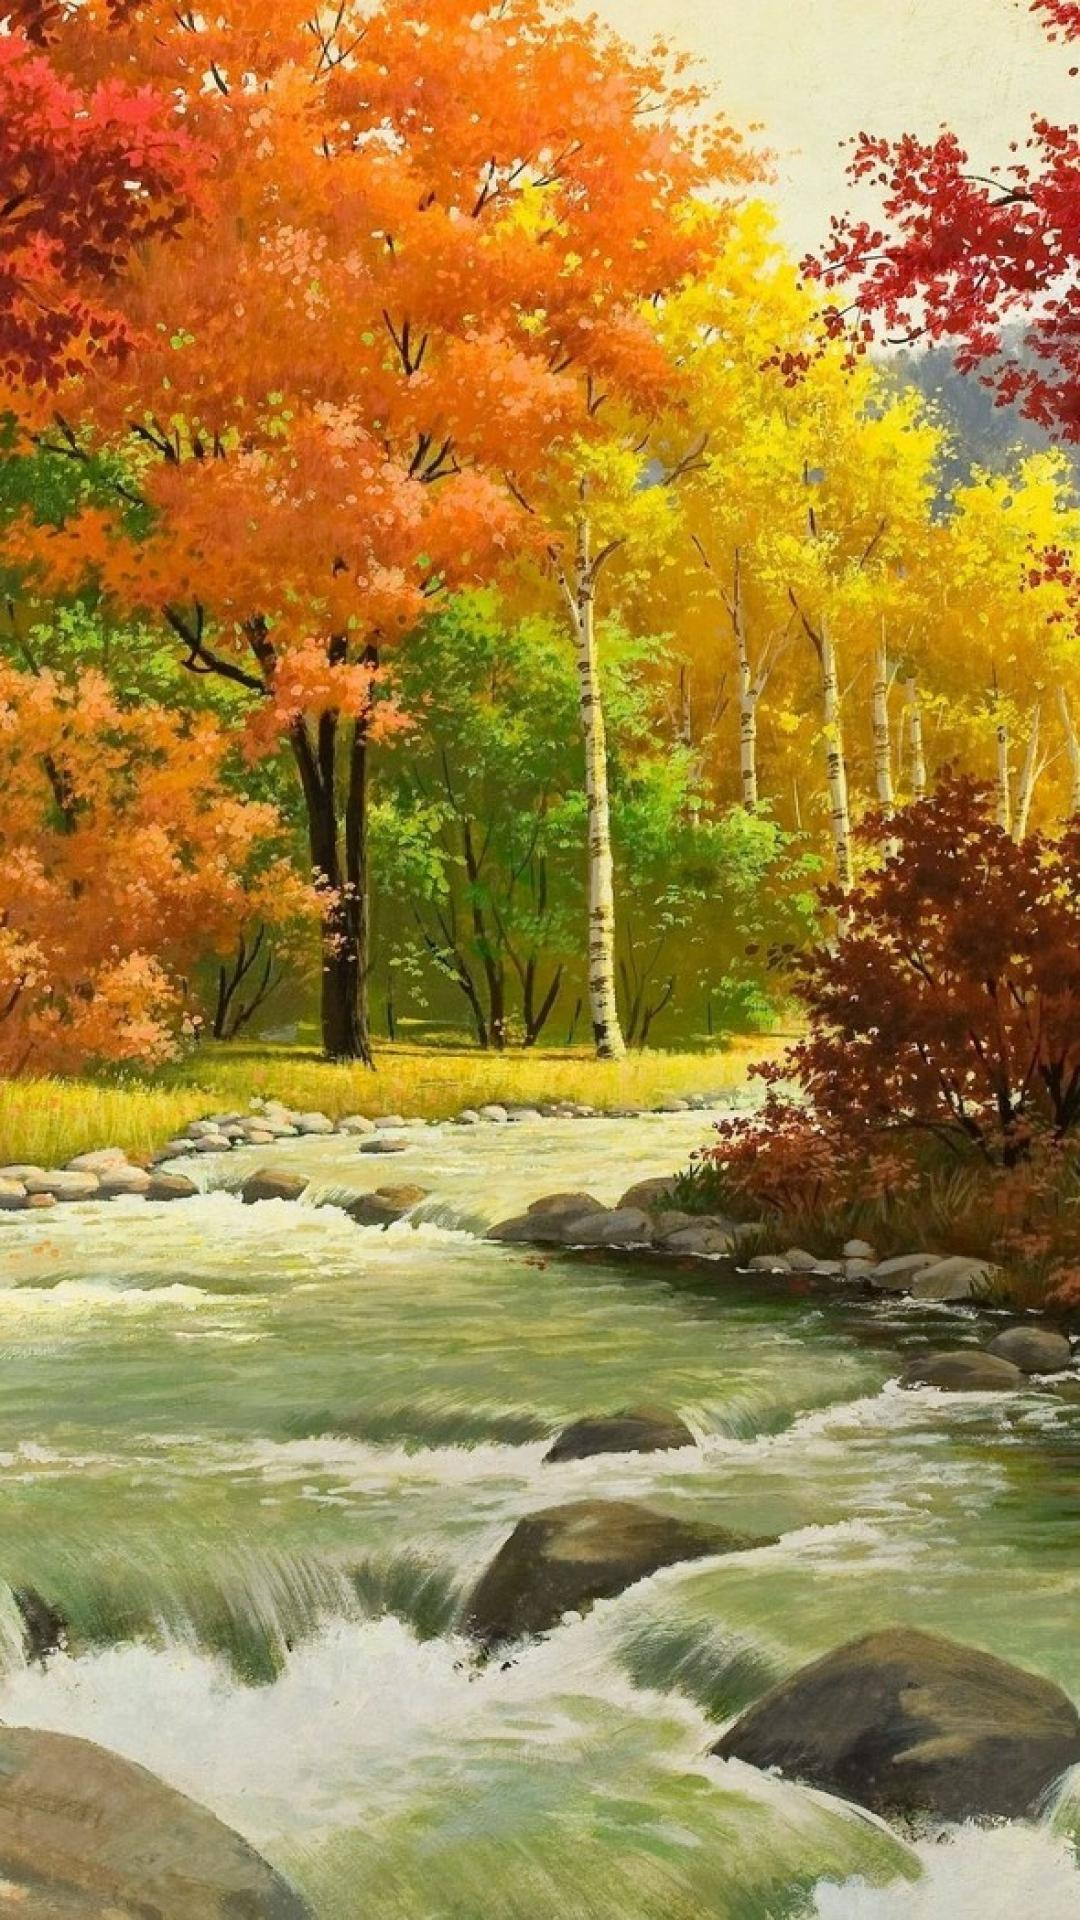 Portrait Hd Nature Wallpapers - Bob Ross Painting Iphone - HD Wallpaper